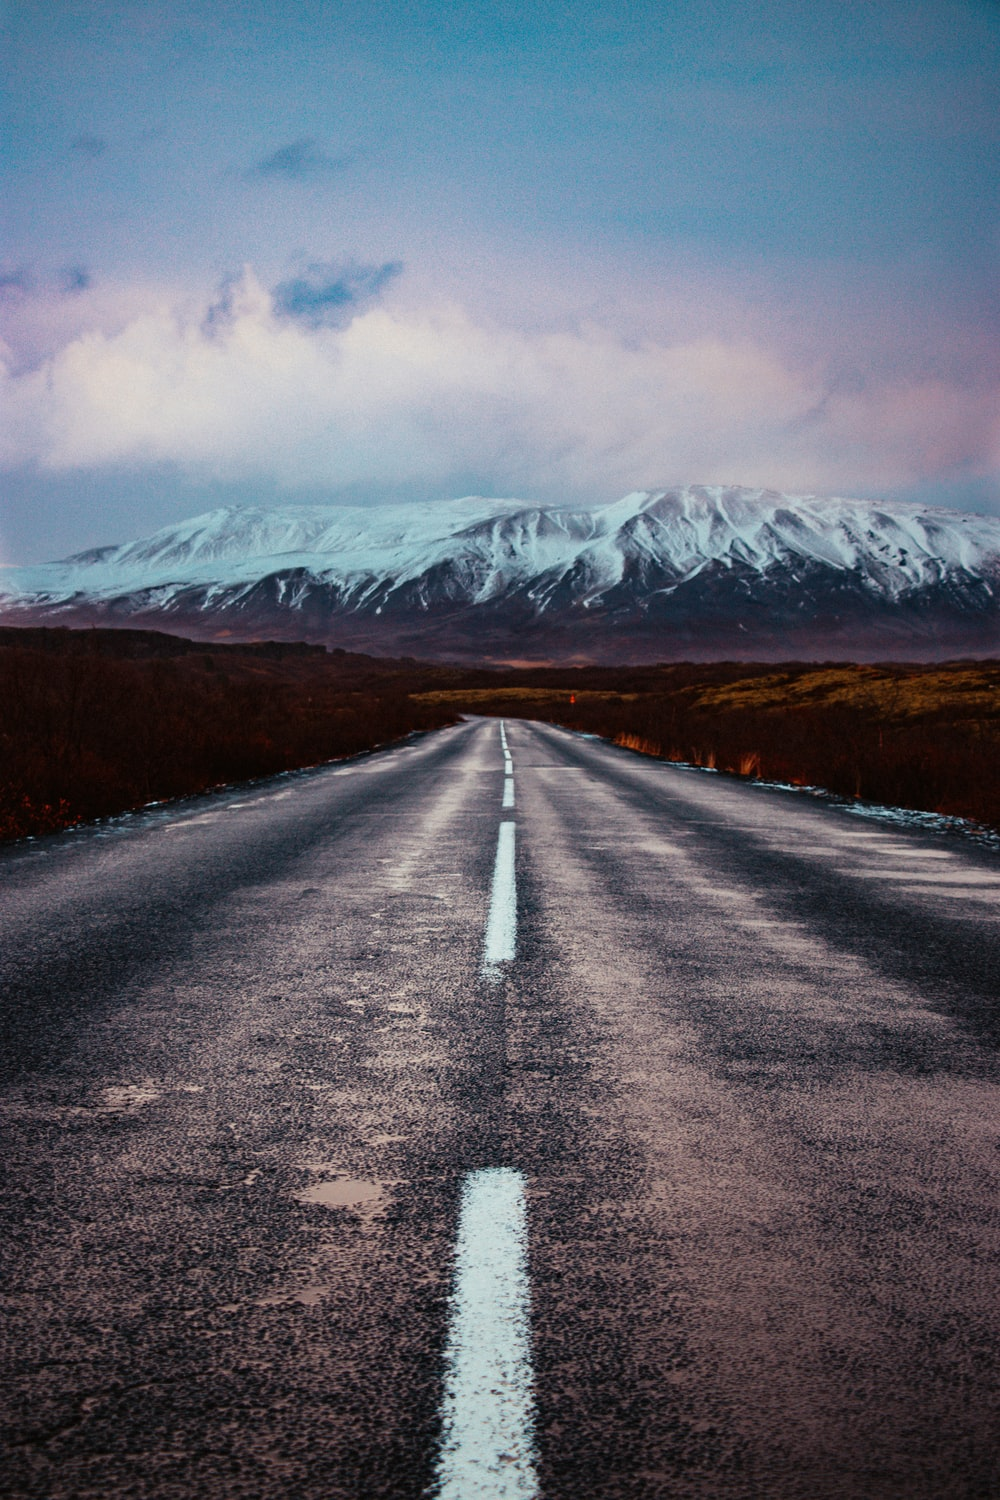 gray asphalt road between brown grass field near snow covered mountain during daytime